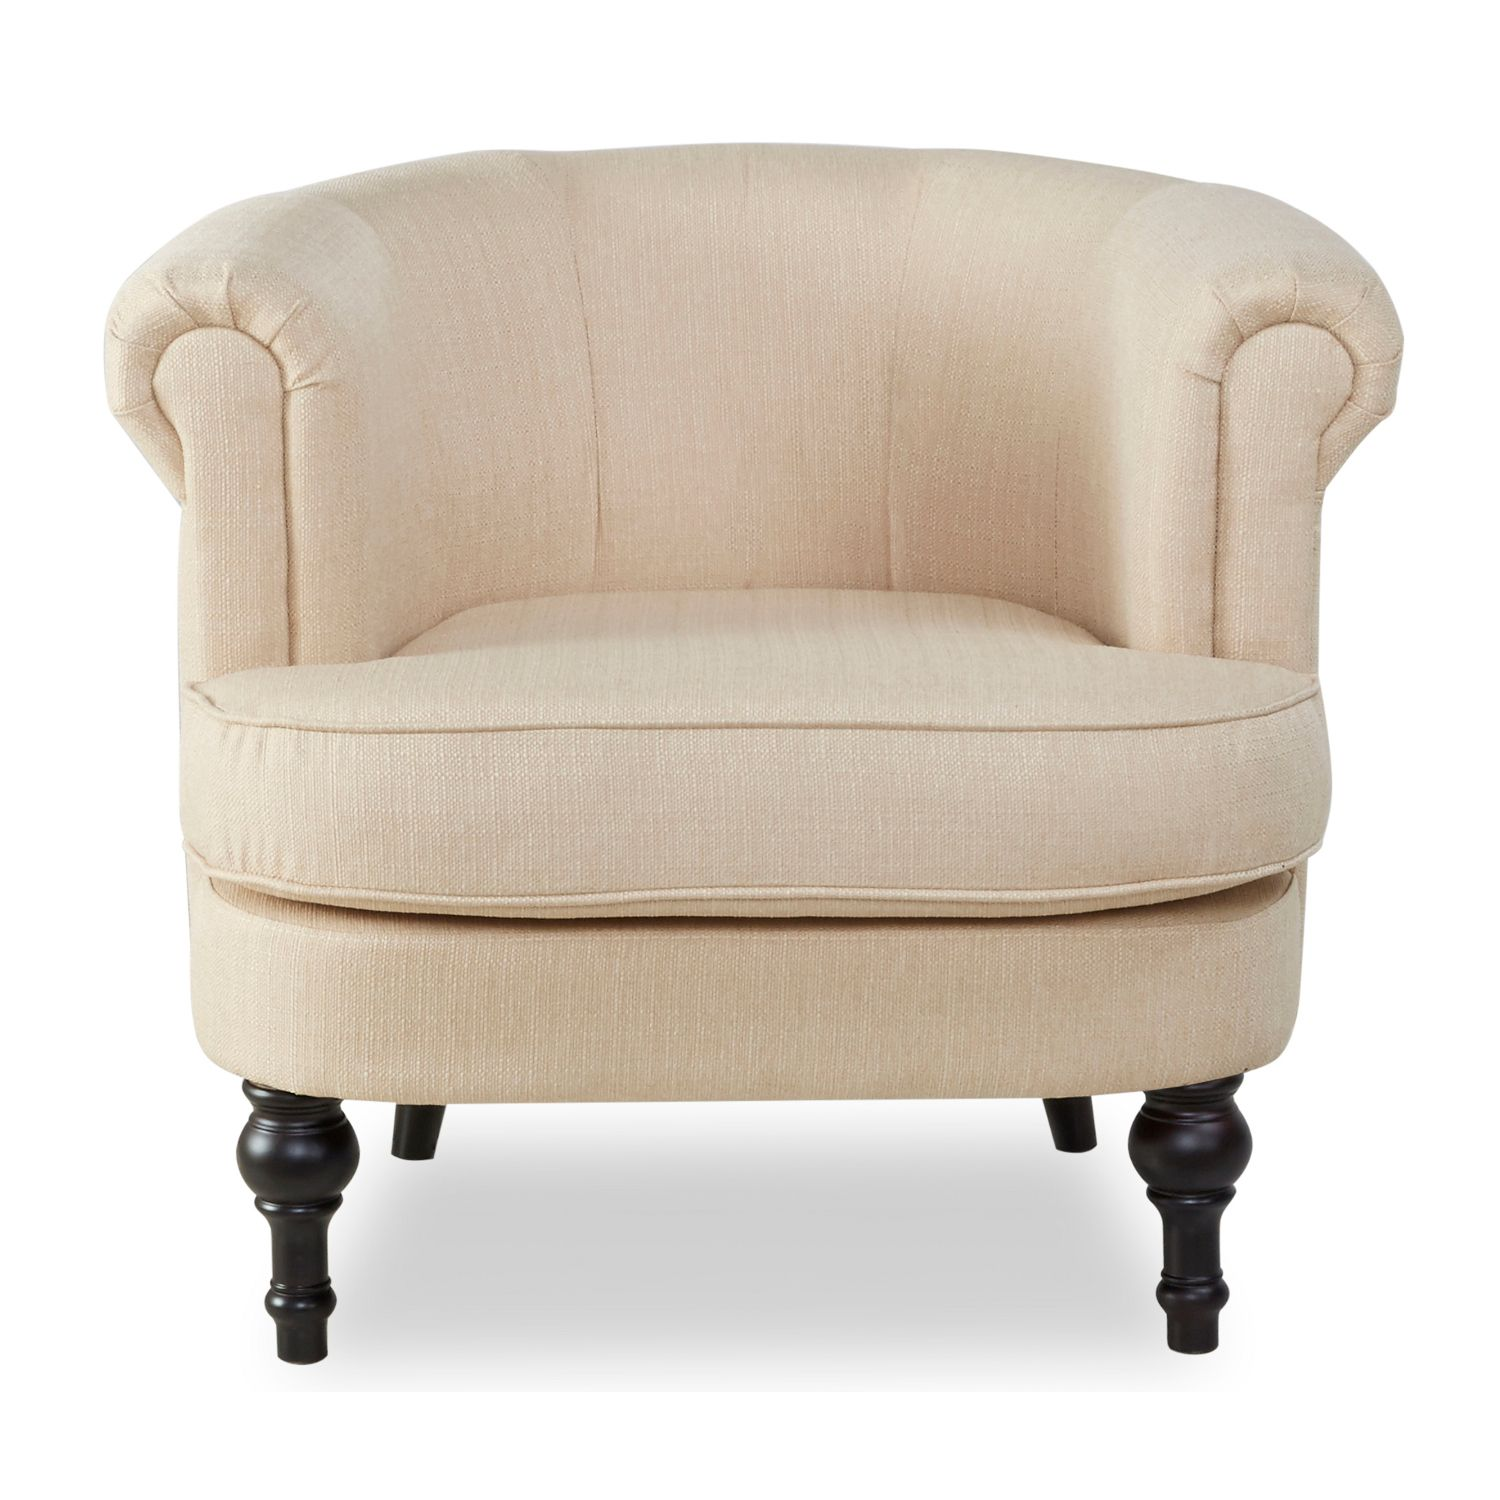 armchairs cheap | armchairs | armchairs uk | armchairs for ...